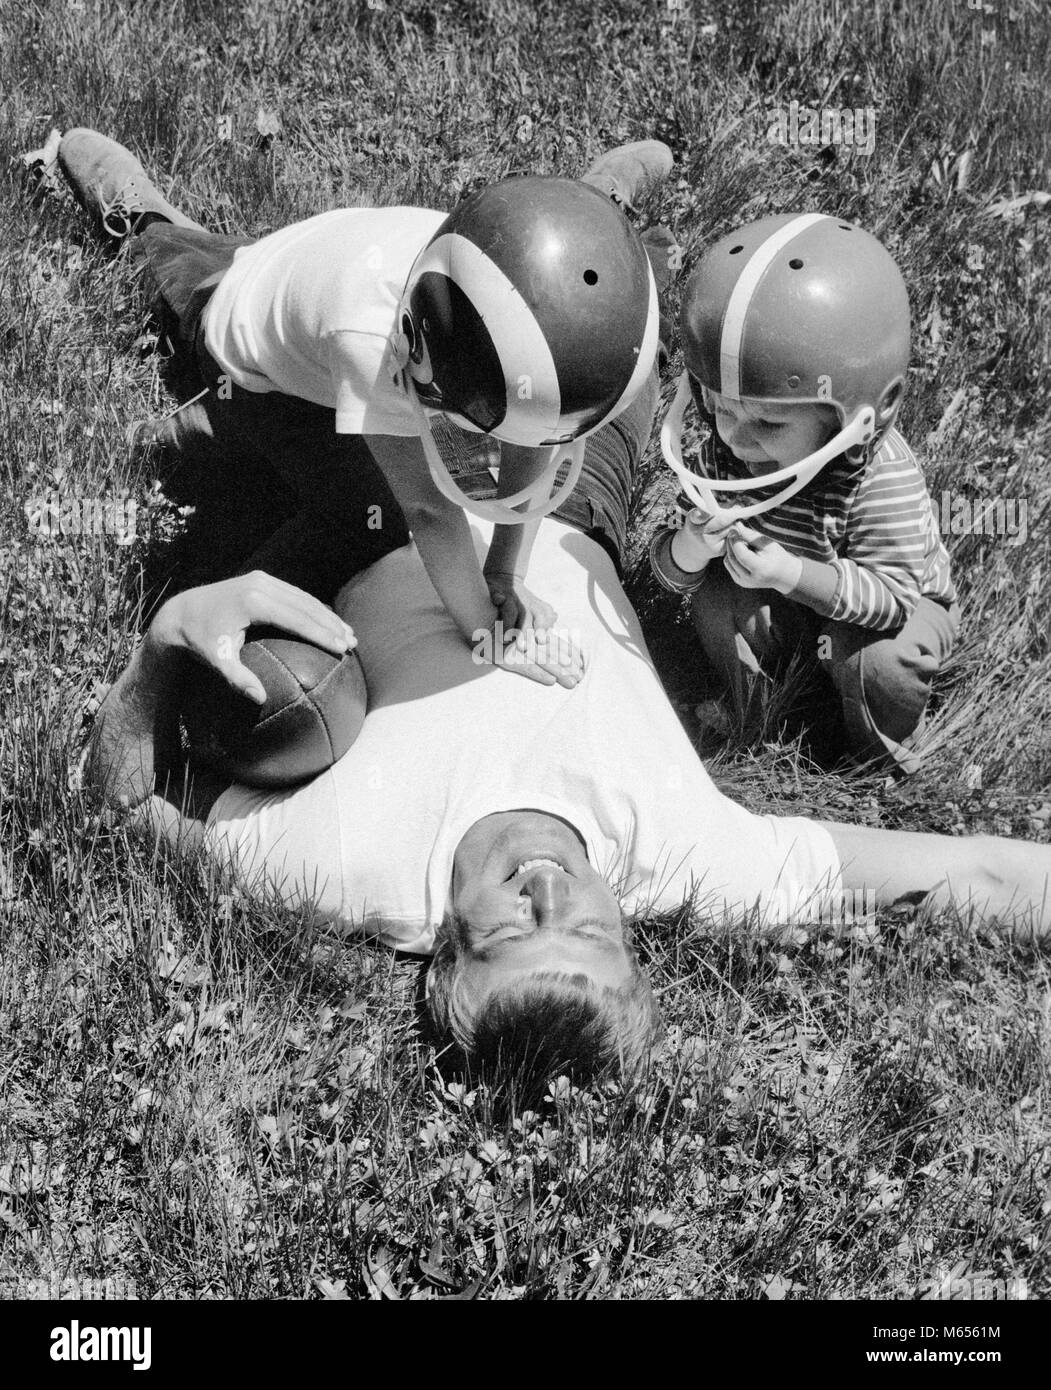 1970s MAN FATHER LYING IN GRASS HOLDING FOOTBALL AFTER BEING TACKLED BY SON AND DAUGHTER - b25063 HAR001 HARS OLD - Stock Image